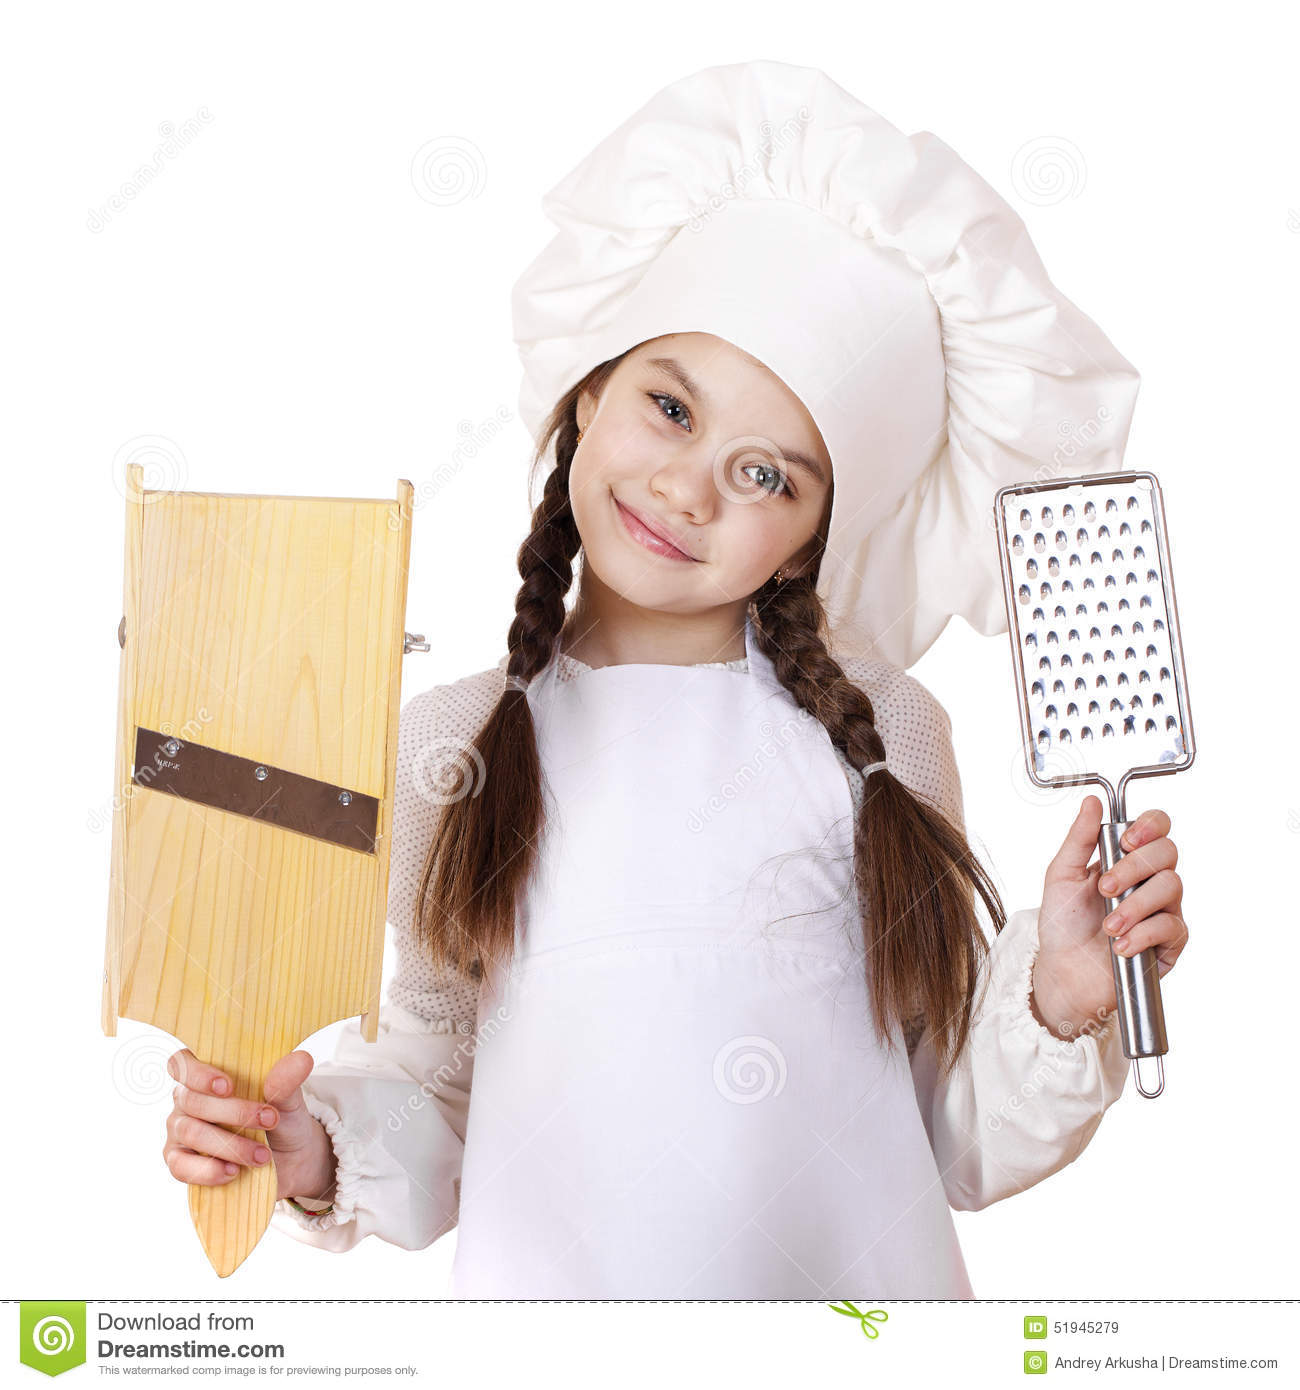 White apron girl - Beautiful Little Girl In A White Apron And Holding A Wooden Grat